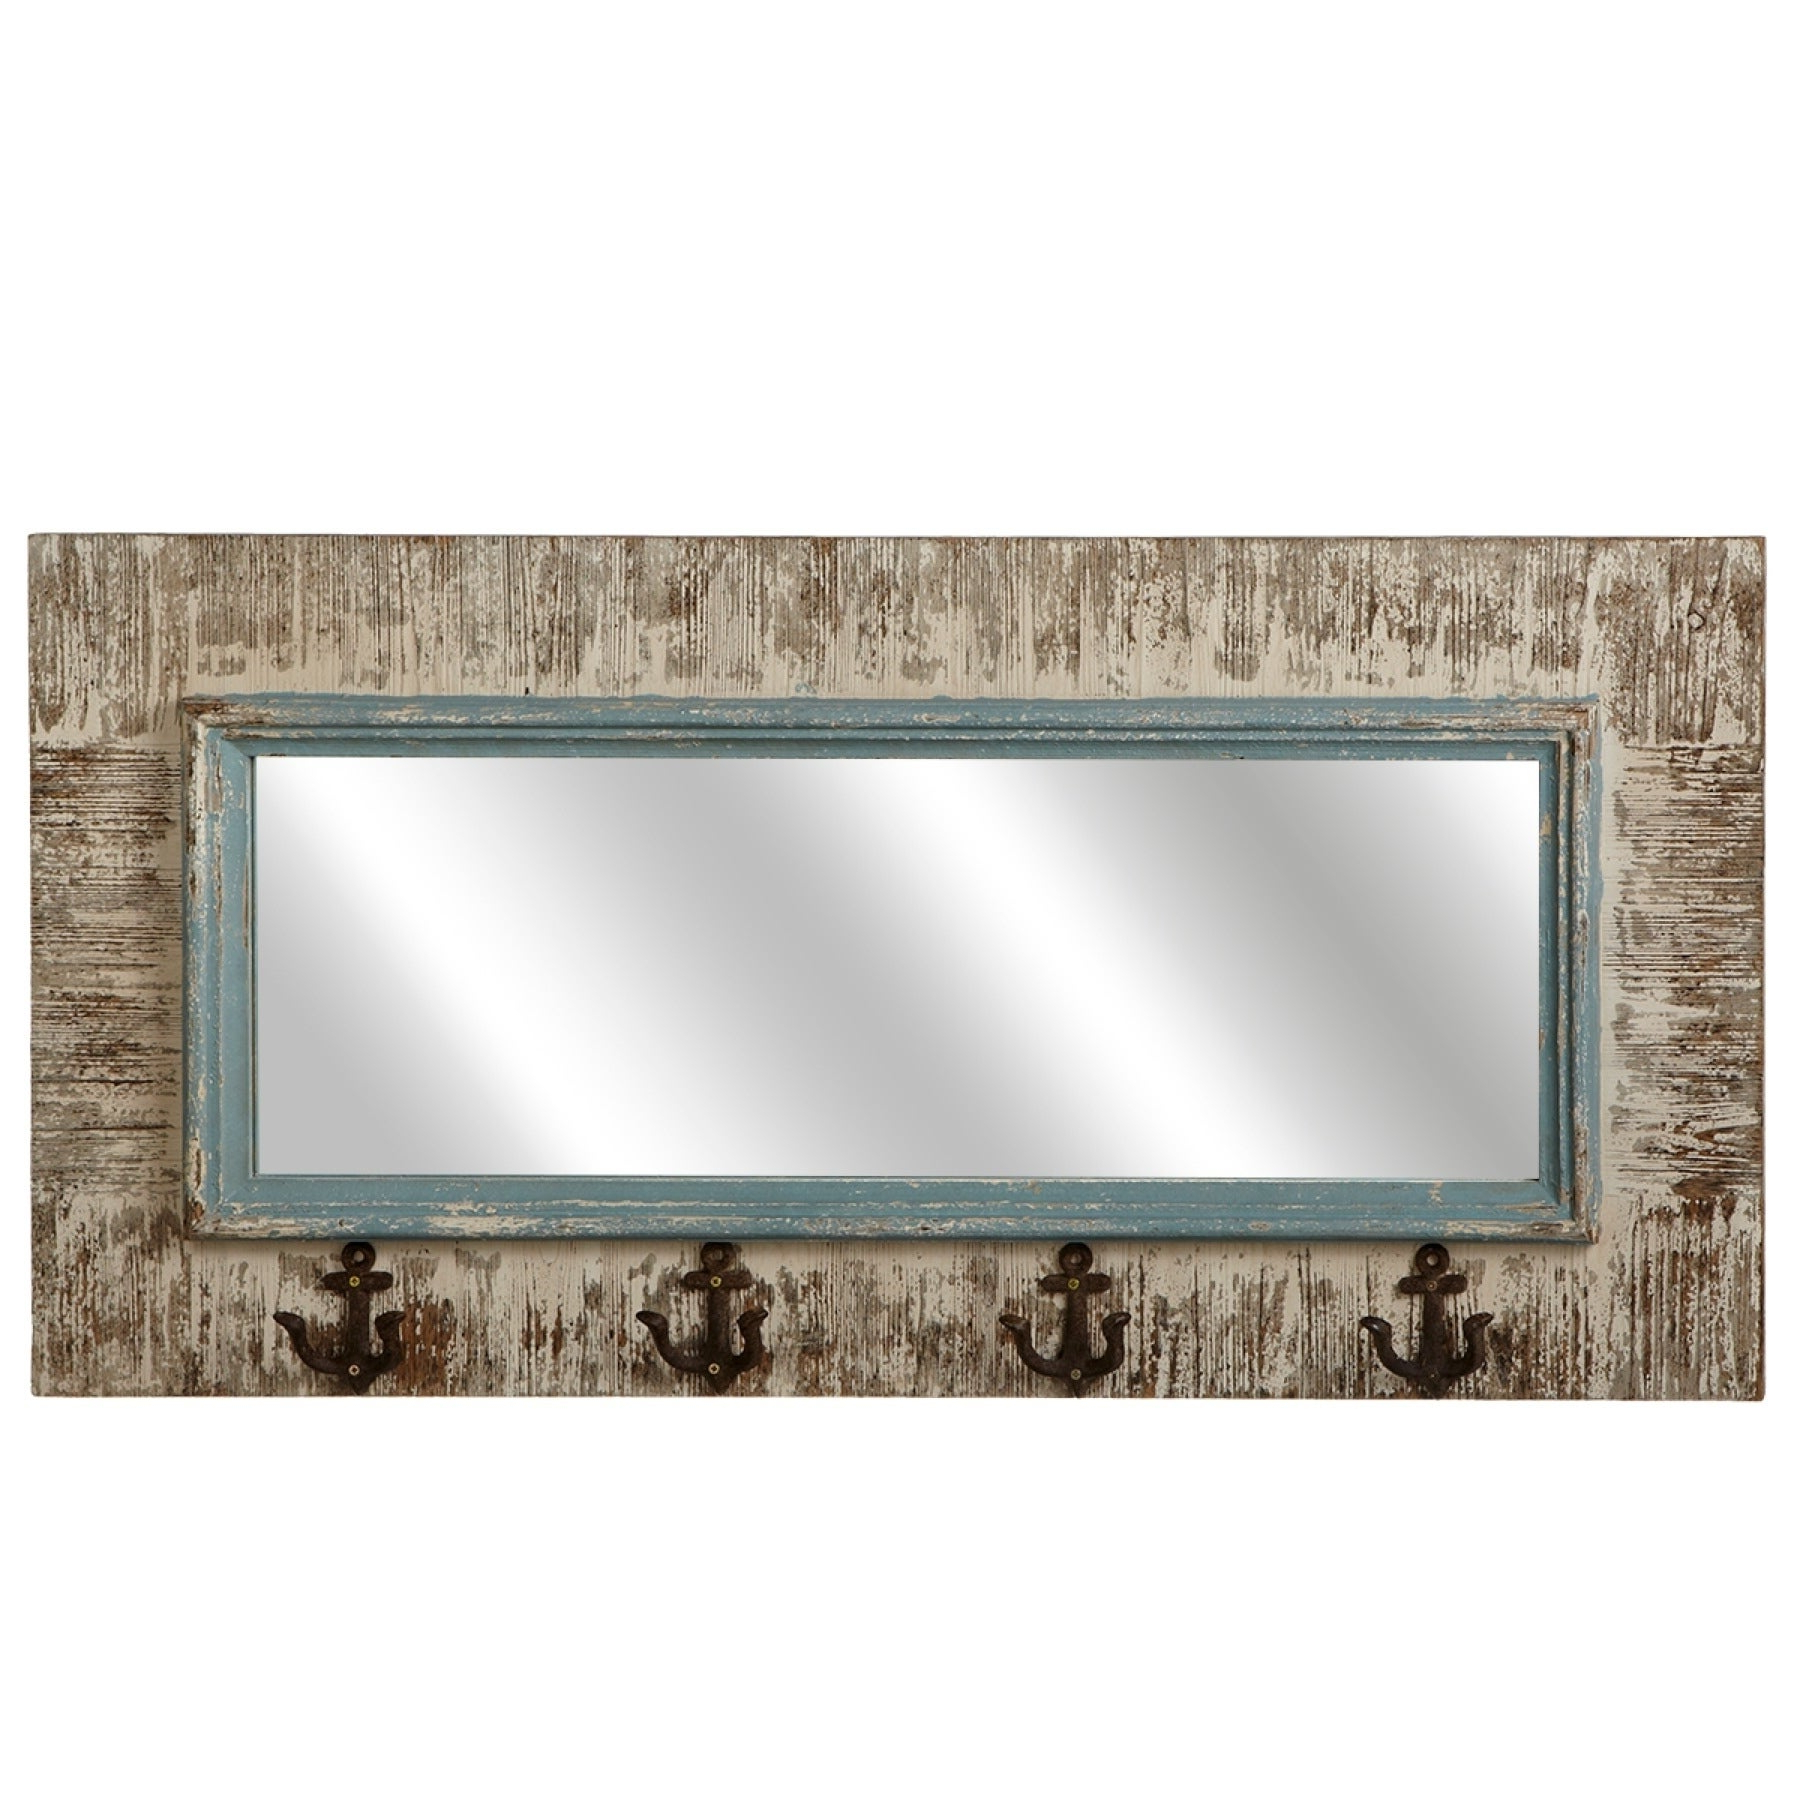 Distressed Wood Wall Mirrors Inside Preferred Midwest Cbk Multicolored Distressed Wood Medium Rectangular Wall Mirror  With Anchor Hooks (View 9 of 20)